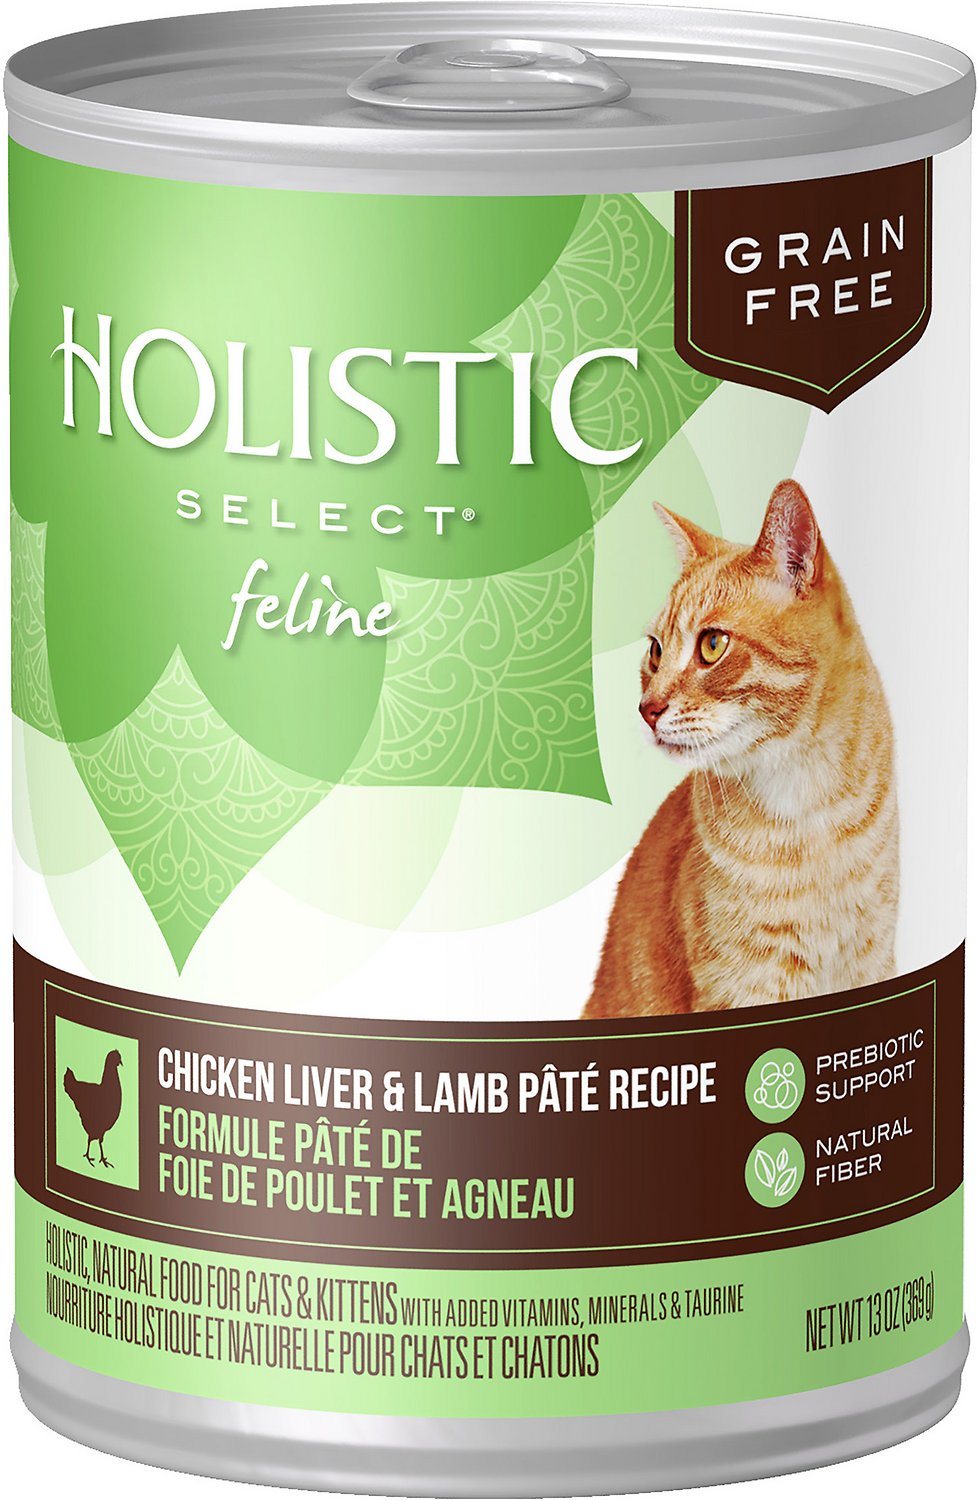 Holistic Select Chicken Liver & Lamb Pate Recipe Grain-Free Canned Cat & Kitten Food, 5.5-oz